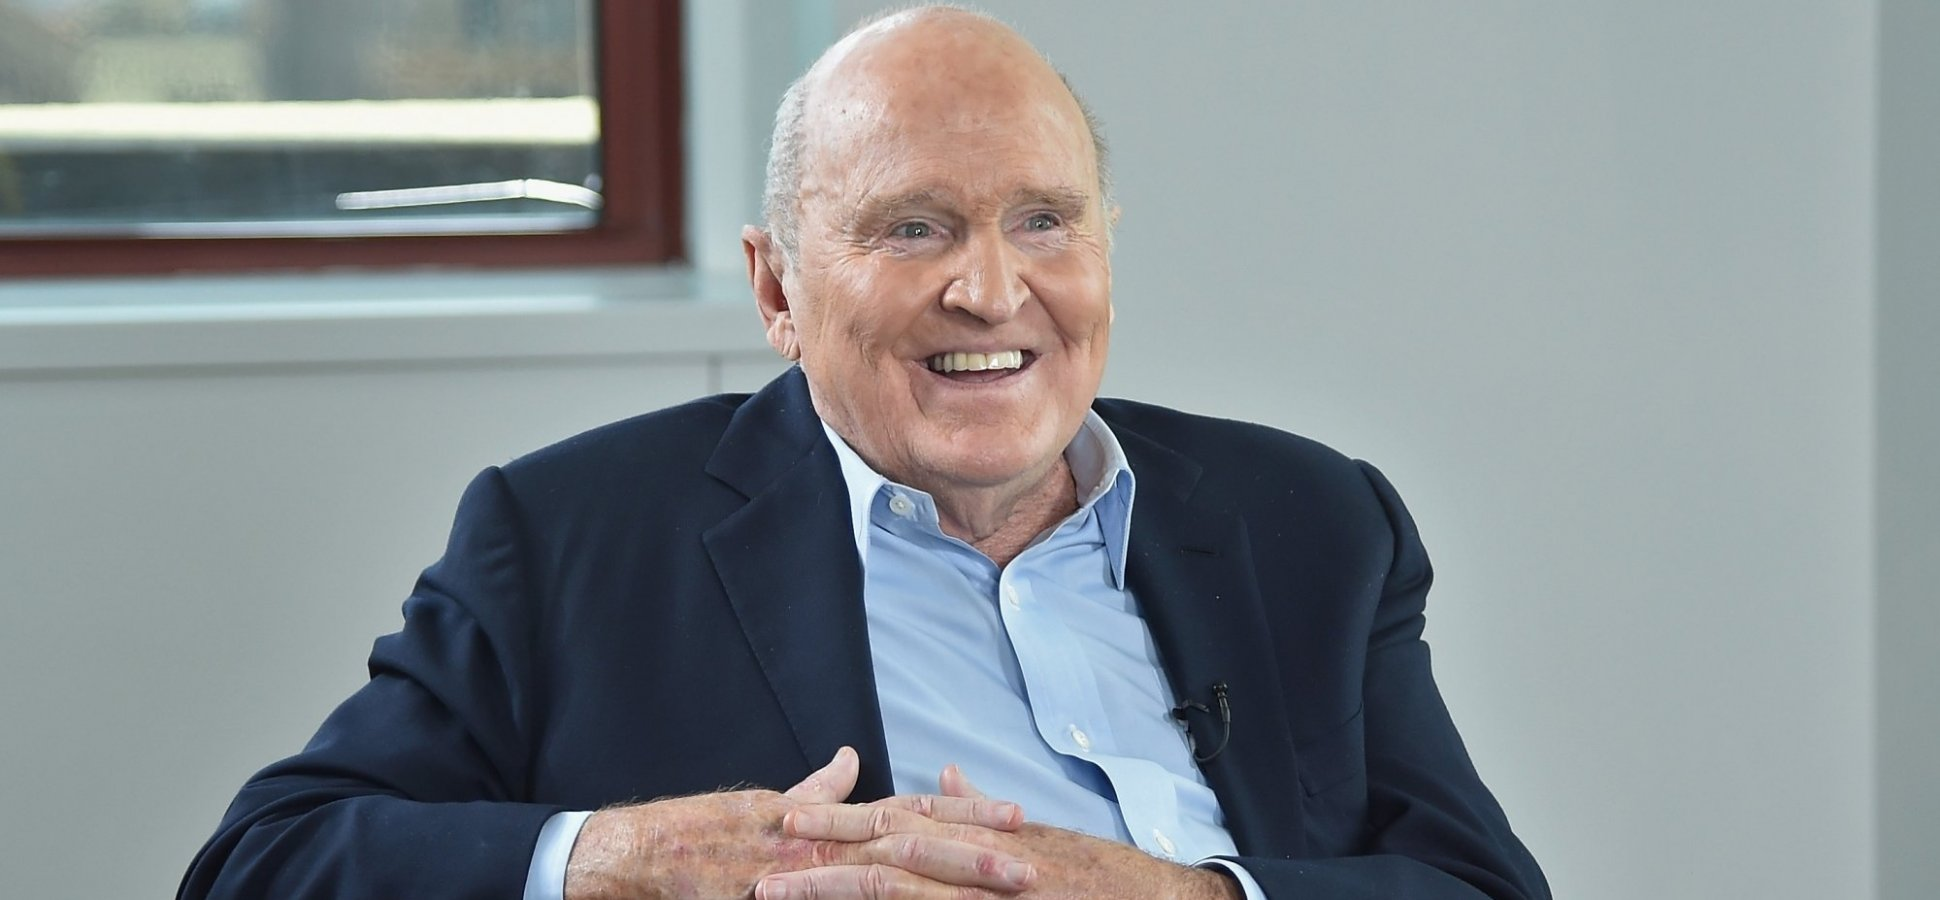 The 8 Rules of Leadership by Jack Welch